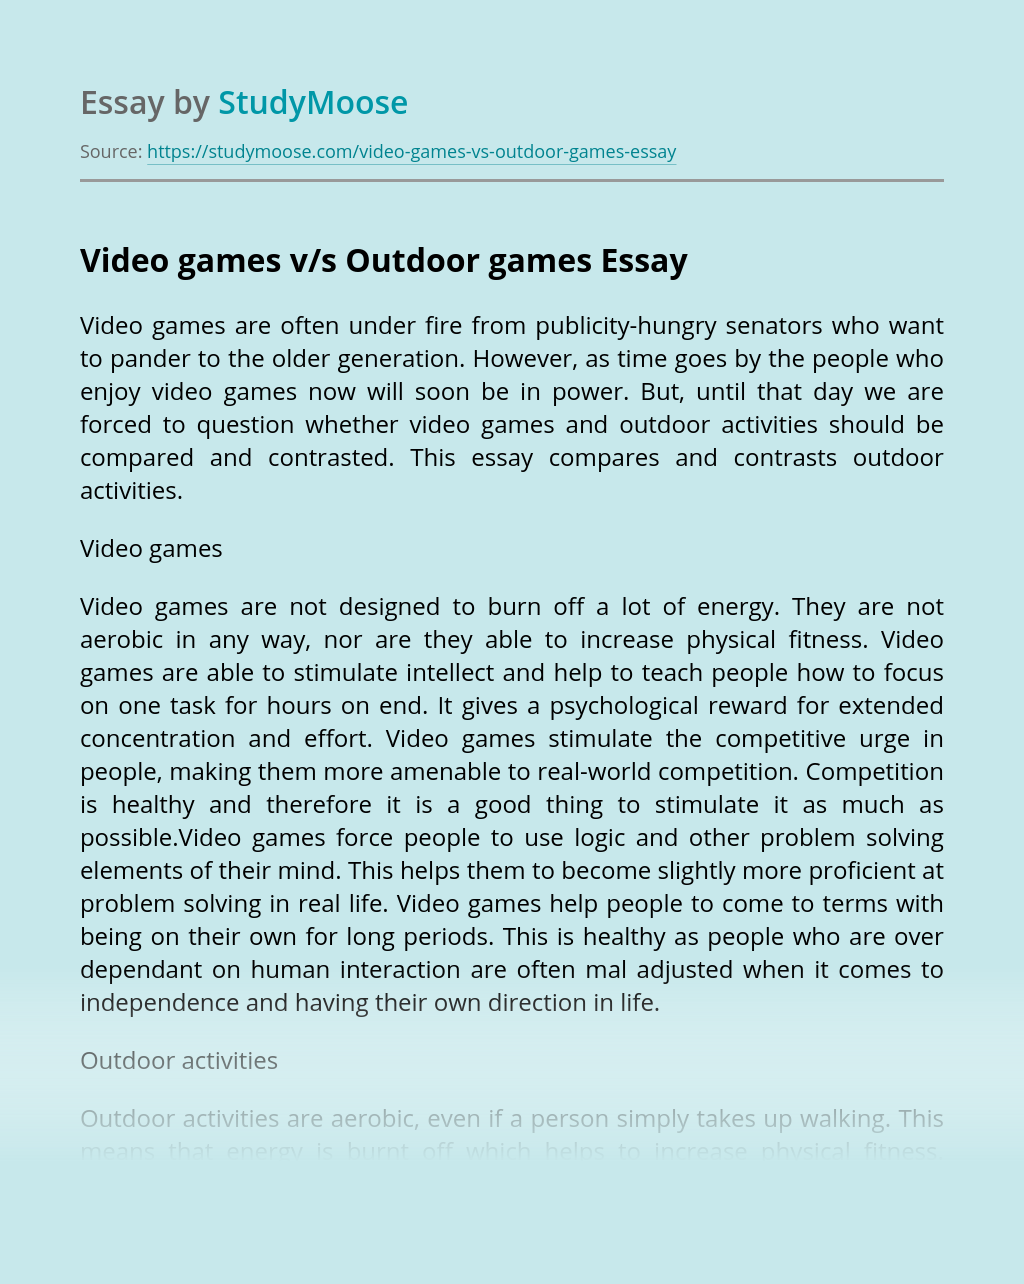 Video games v/s Outdoor games